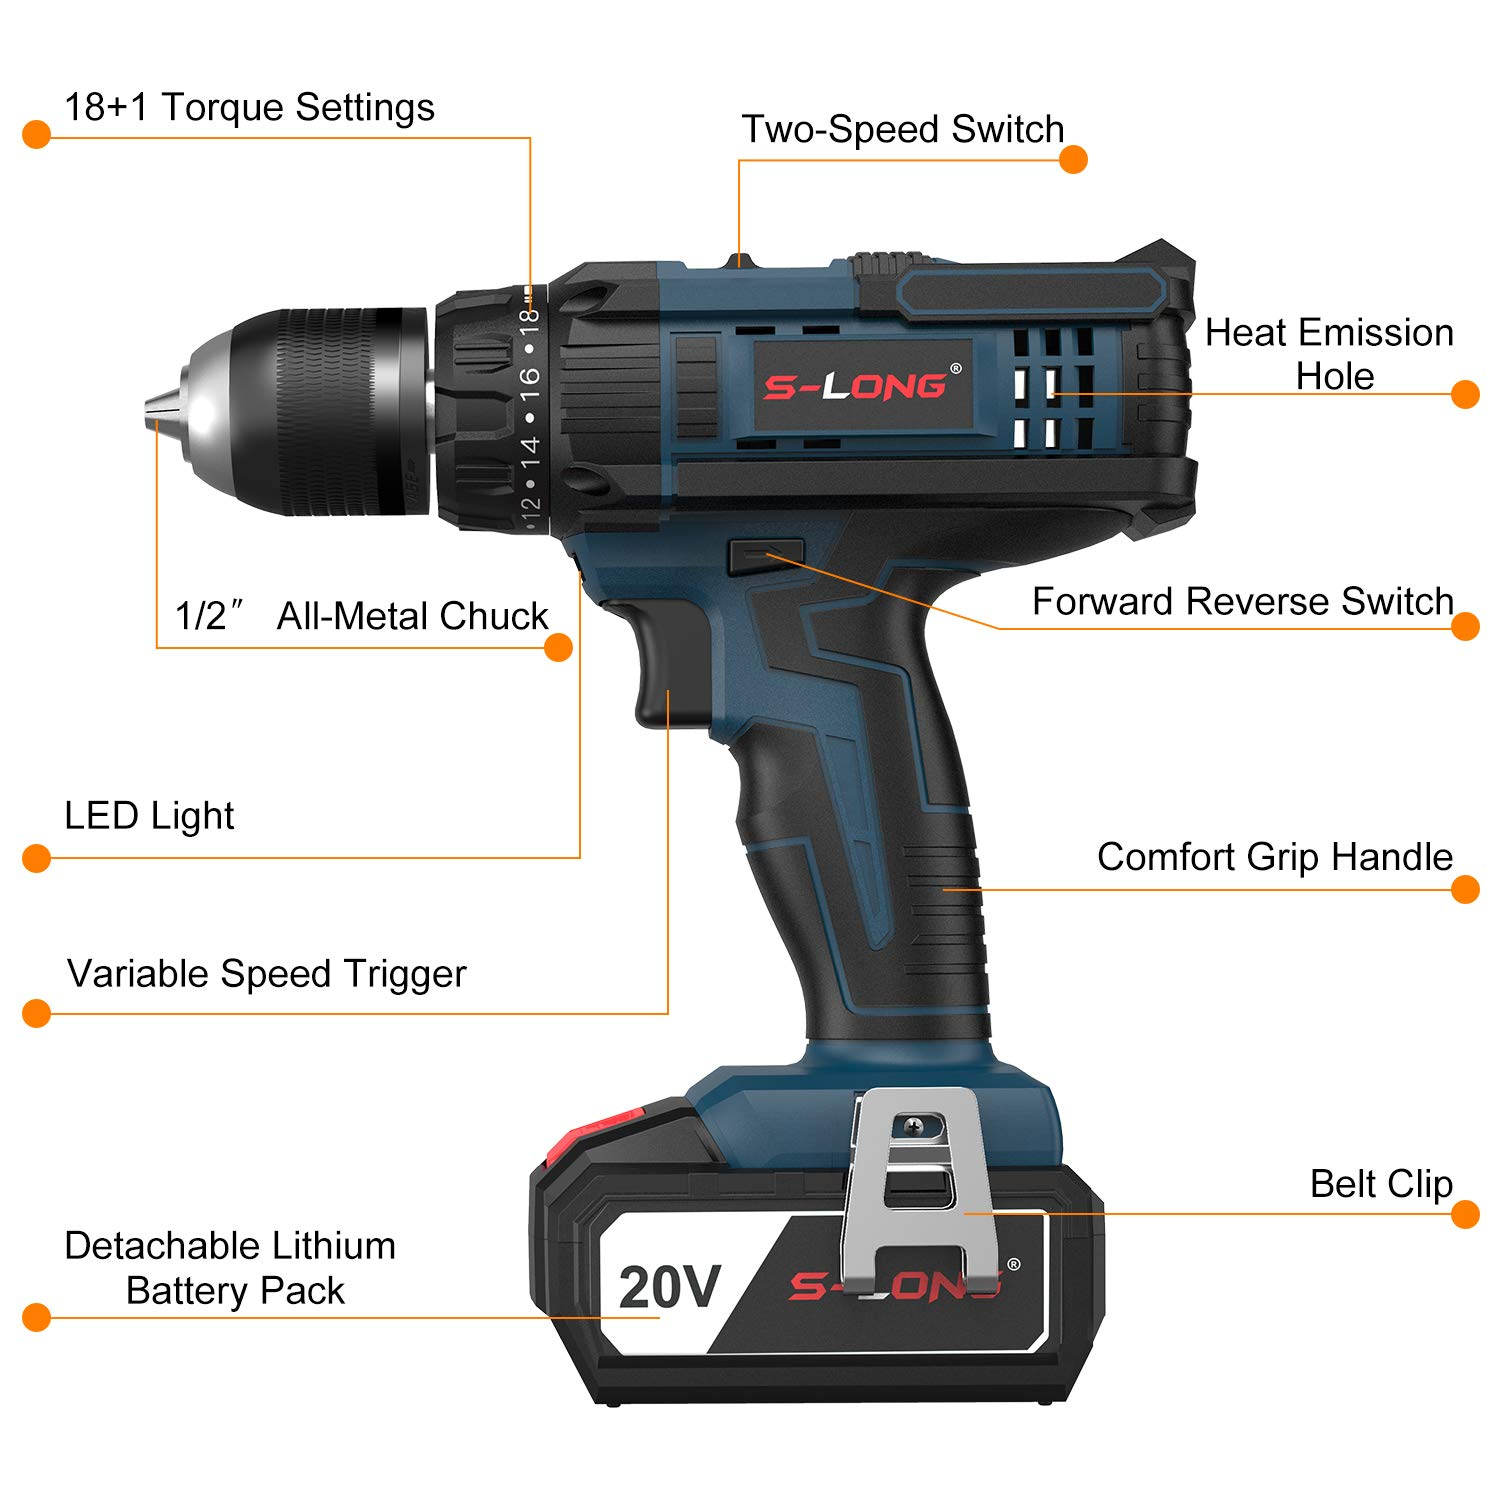 20V Cordless Drill with 2 Batteries and Charger,1/2 Inch Cordless Drill Set,Variable Speed Drill Driver Cordless by S-LONG by S-LONG (Image #3)